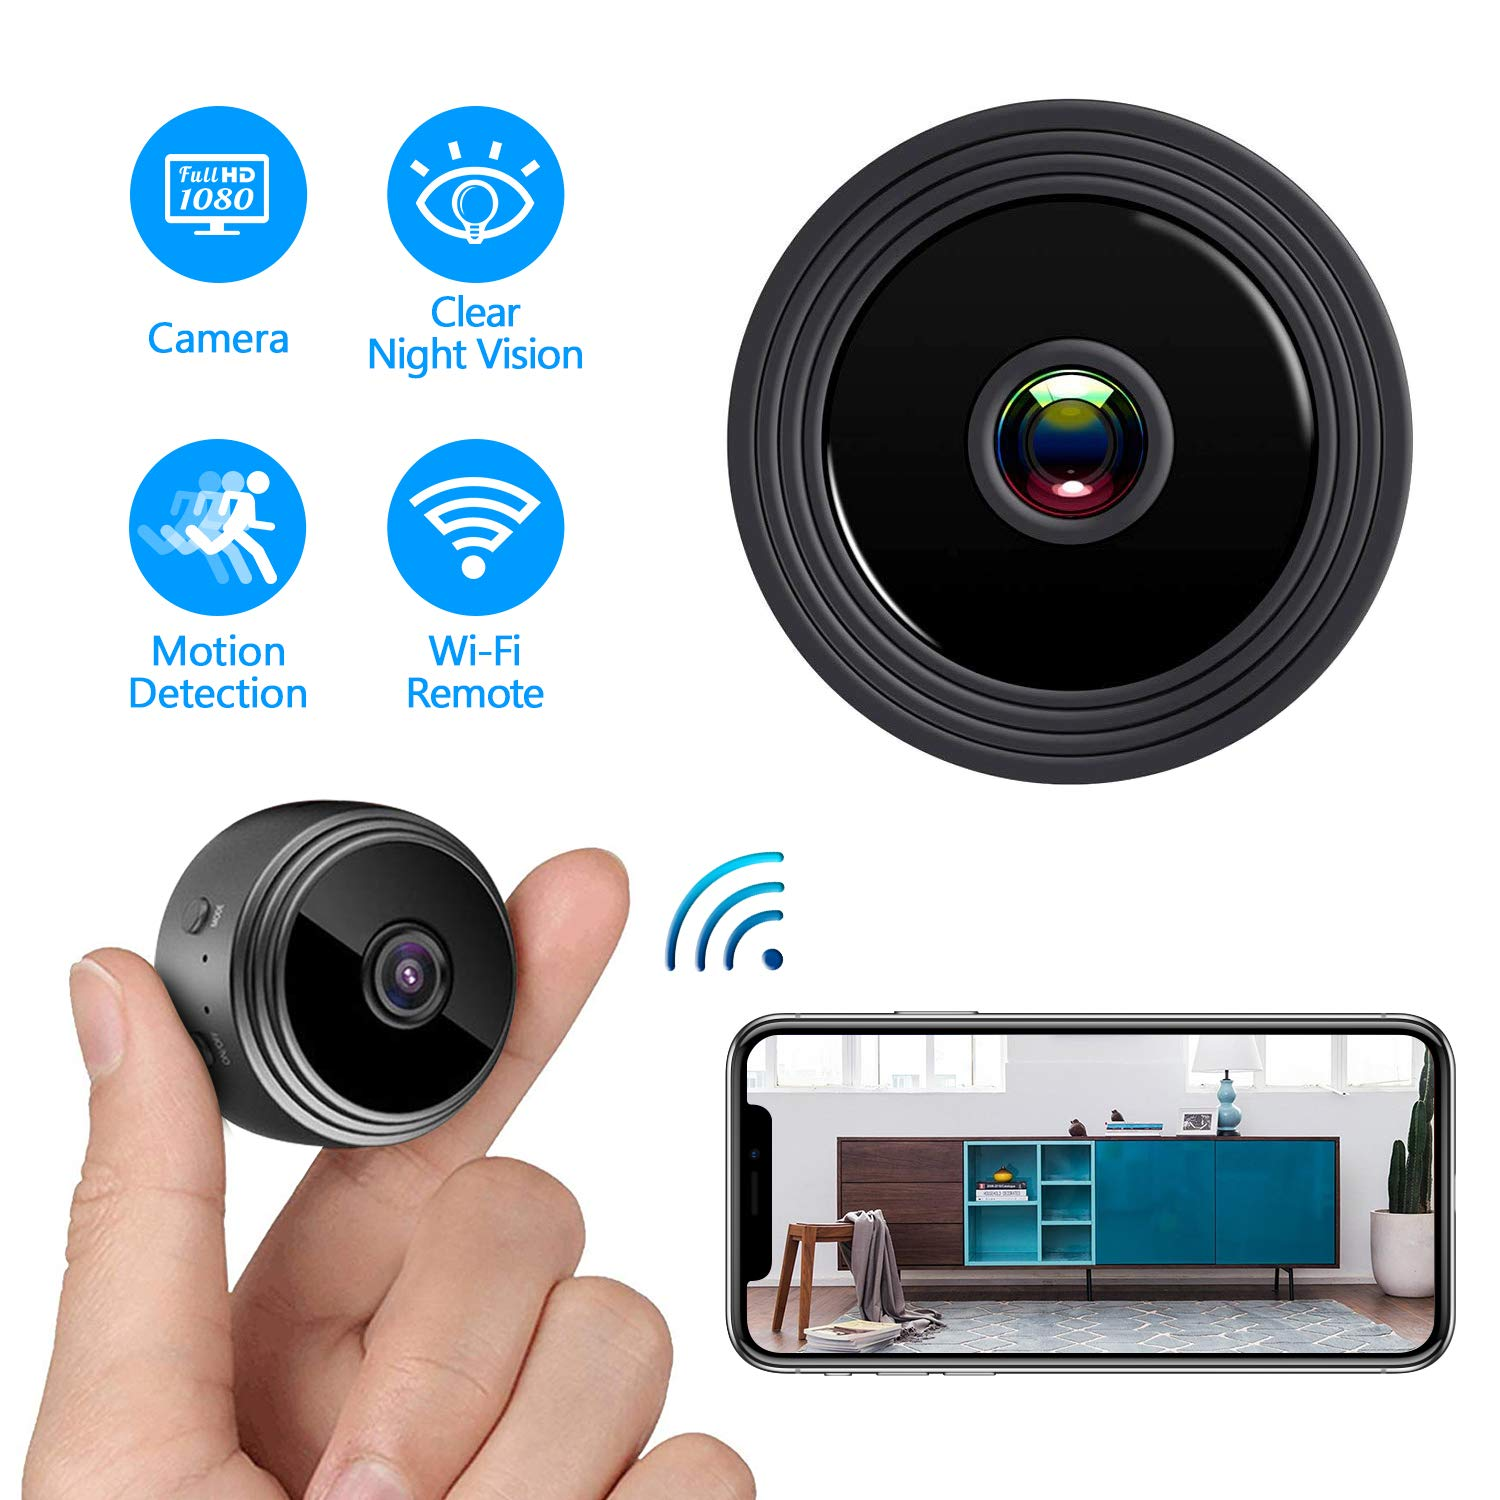 2019 super zoom ip mini spy hidden camera full hd mini camera hidden 1080p mini camera spy wifi remote